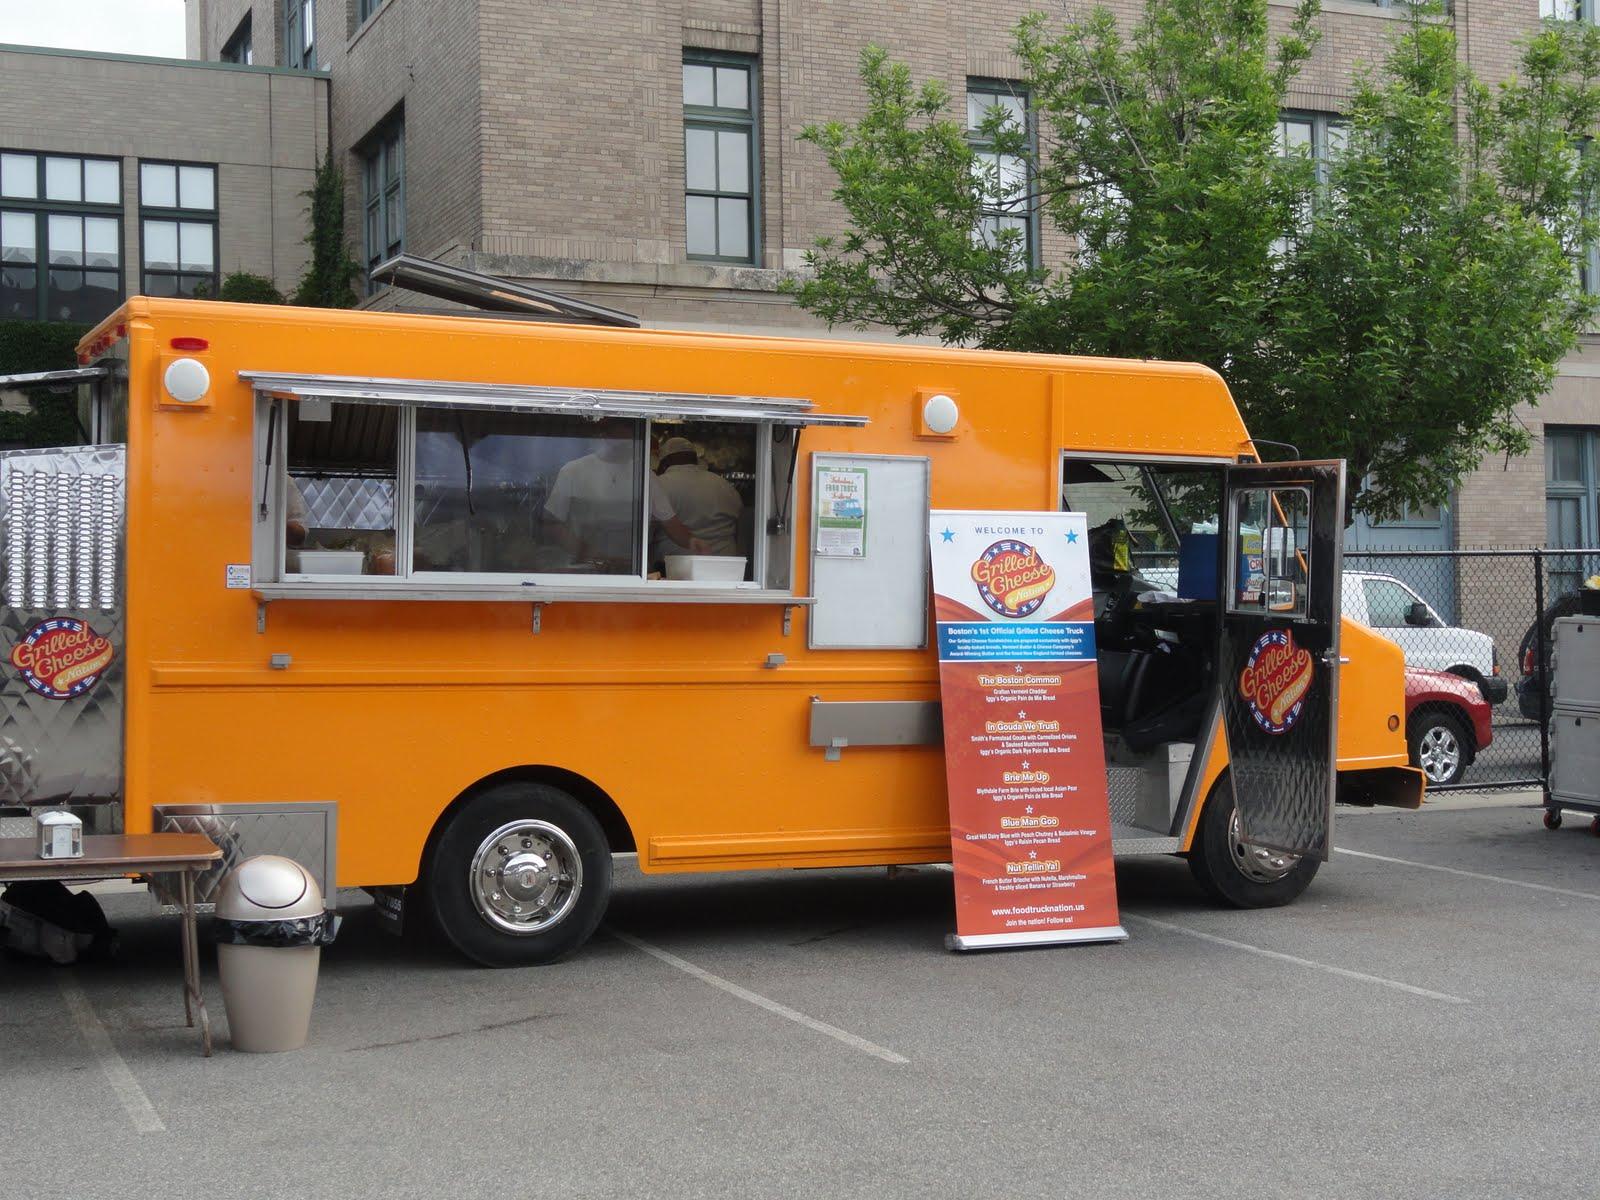 Food Trucks Returning to Boston Common | March 7, 2017 | Friends of the  Public Garden